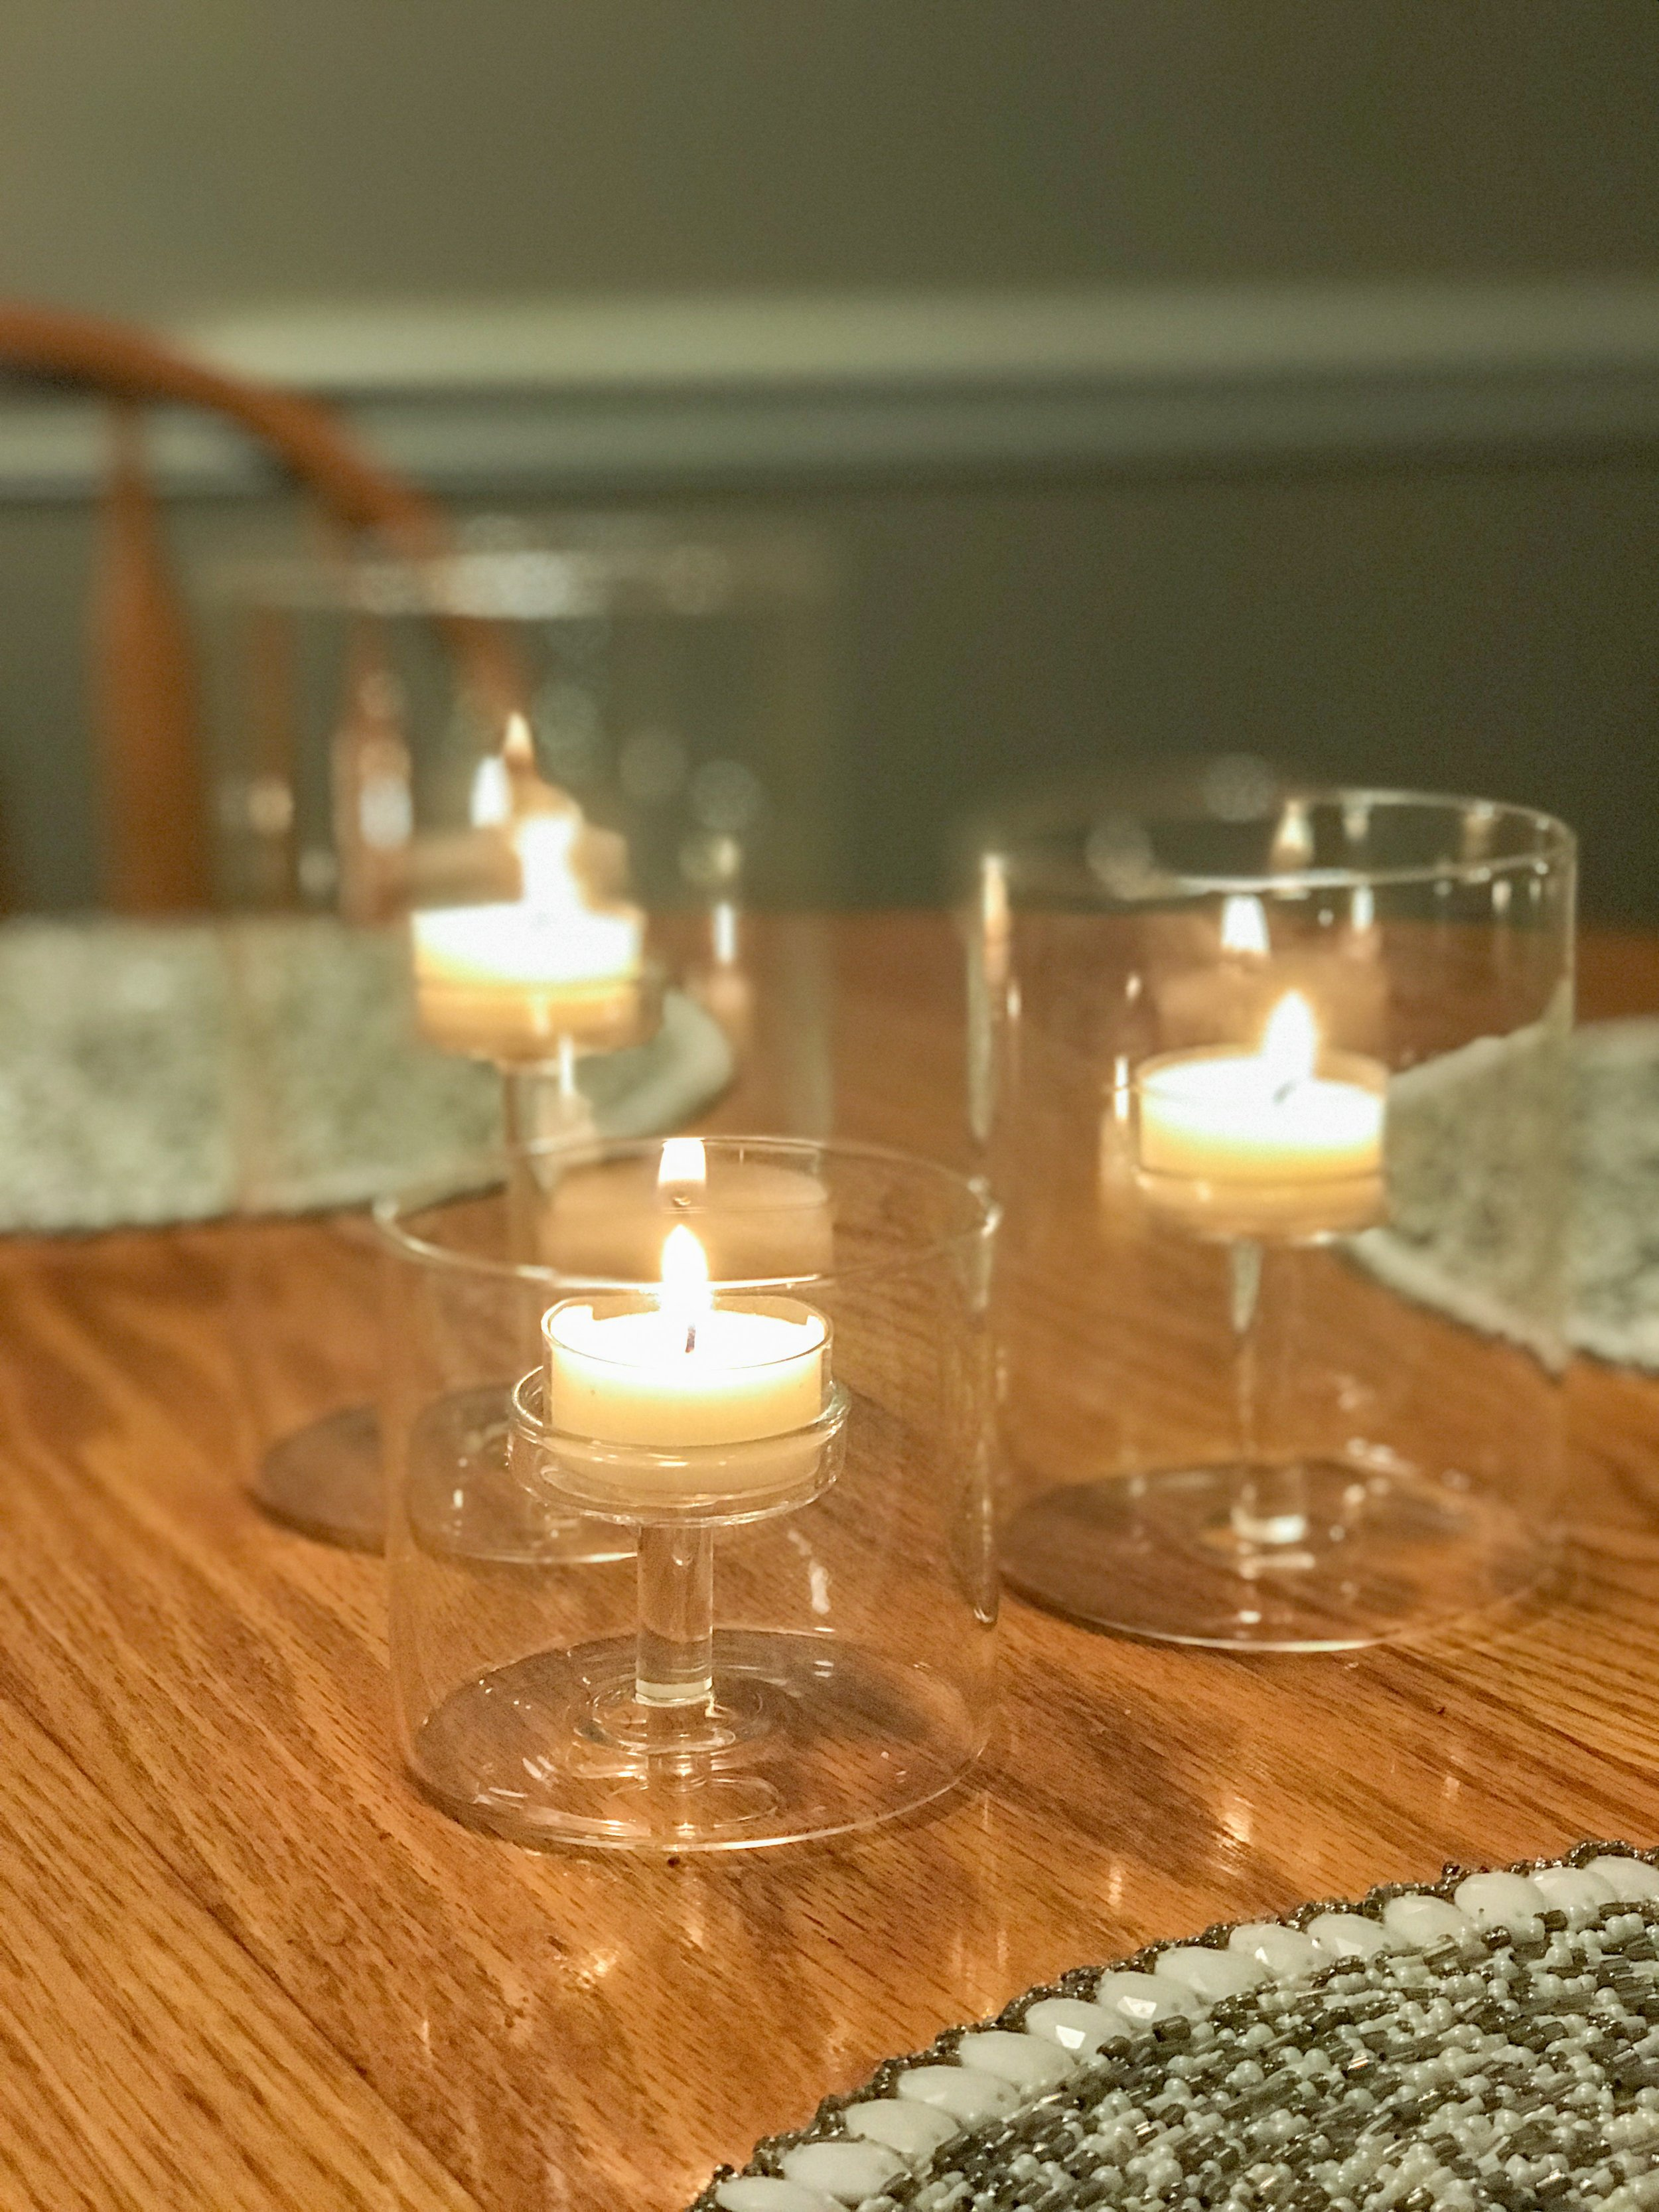 Mack and I try to eat dinner together every night at the table with tea light candles lit. It's such a nice way to catch up about our days and have nice conversations together. These tea light candle holders are so elegant and modern looking and I just LOVE the way they look on my dining room table!